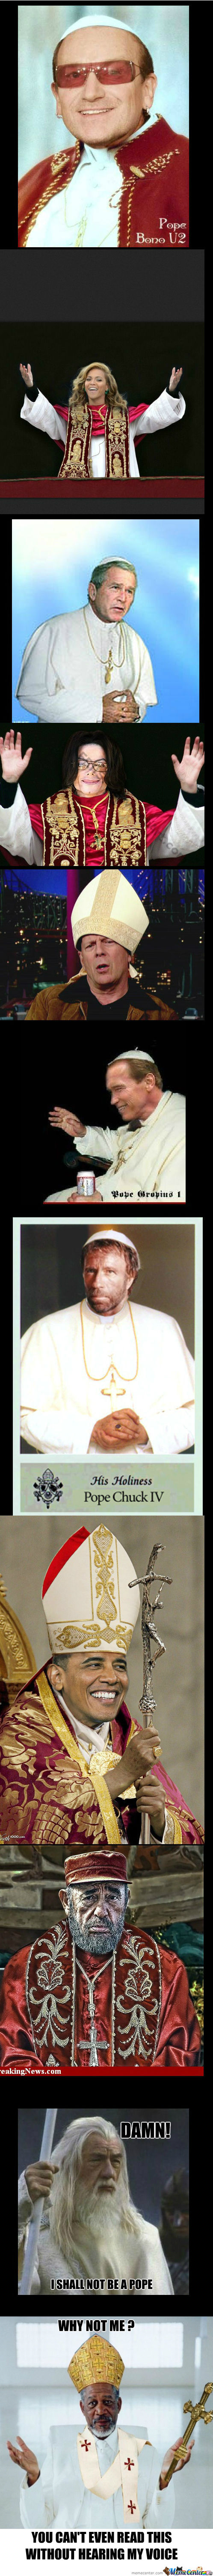 [RMX] Newest Pope Candidates (Chuck Norris Would Be My Choice)